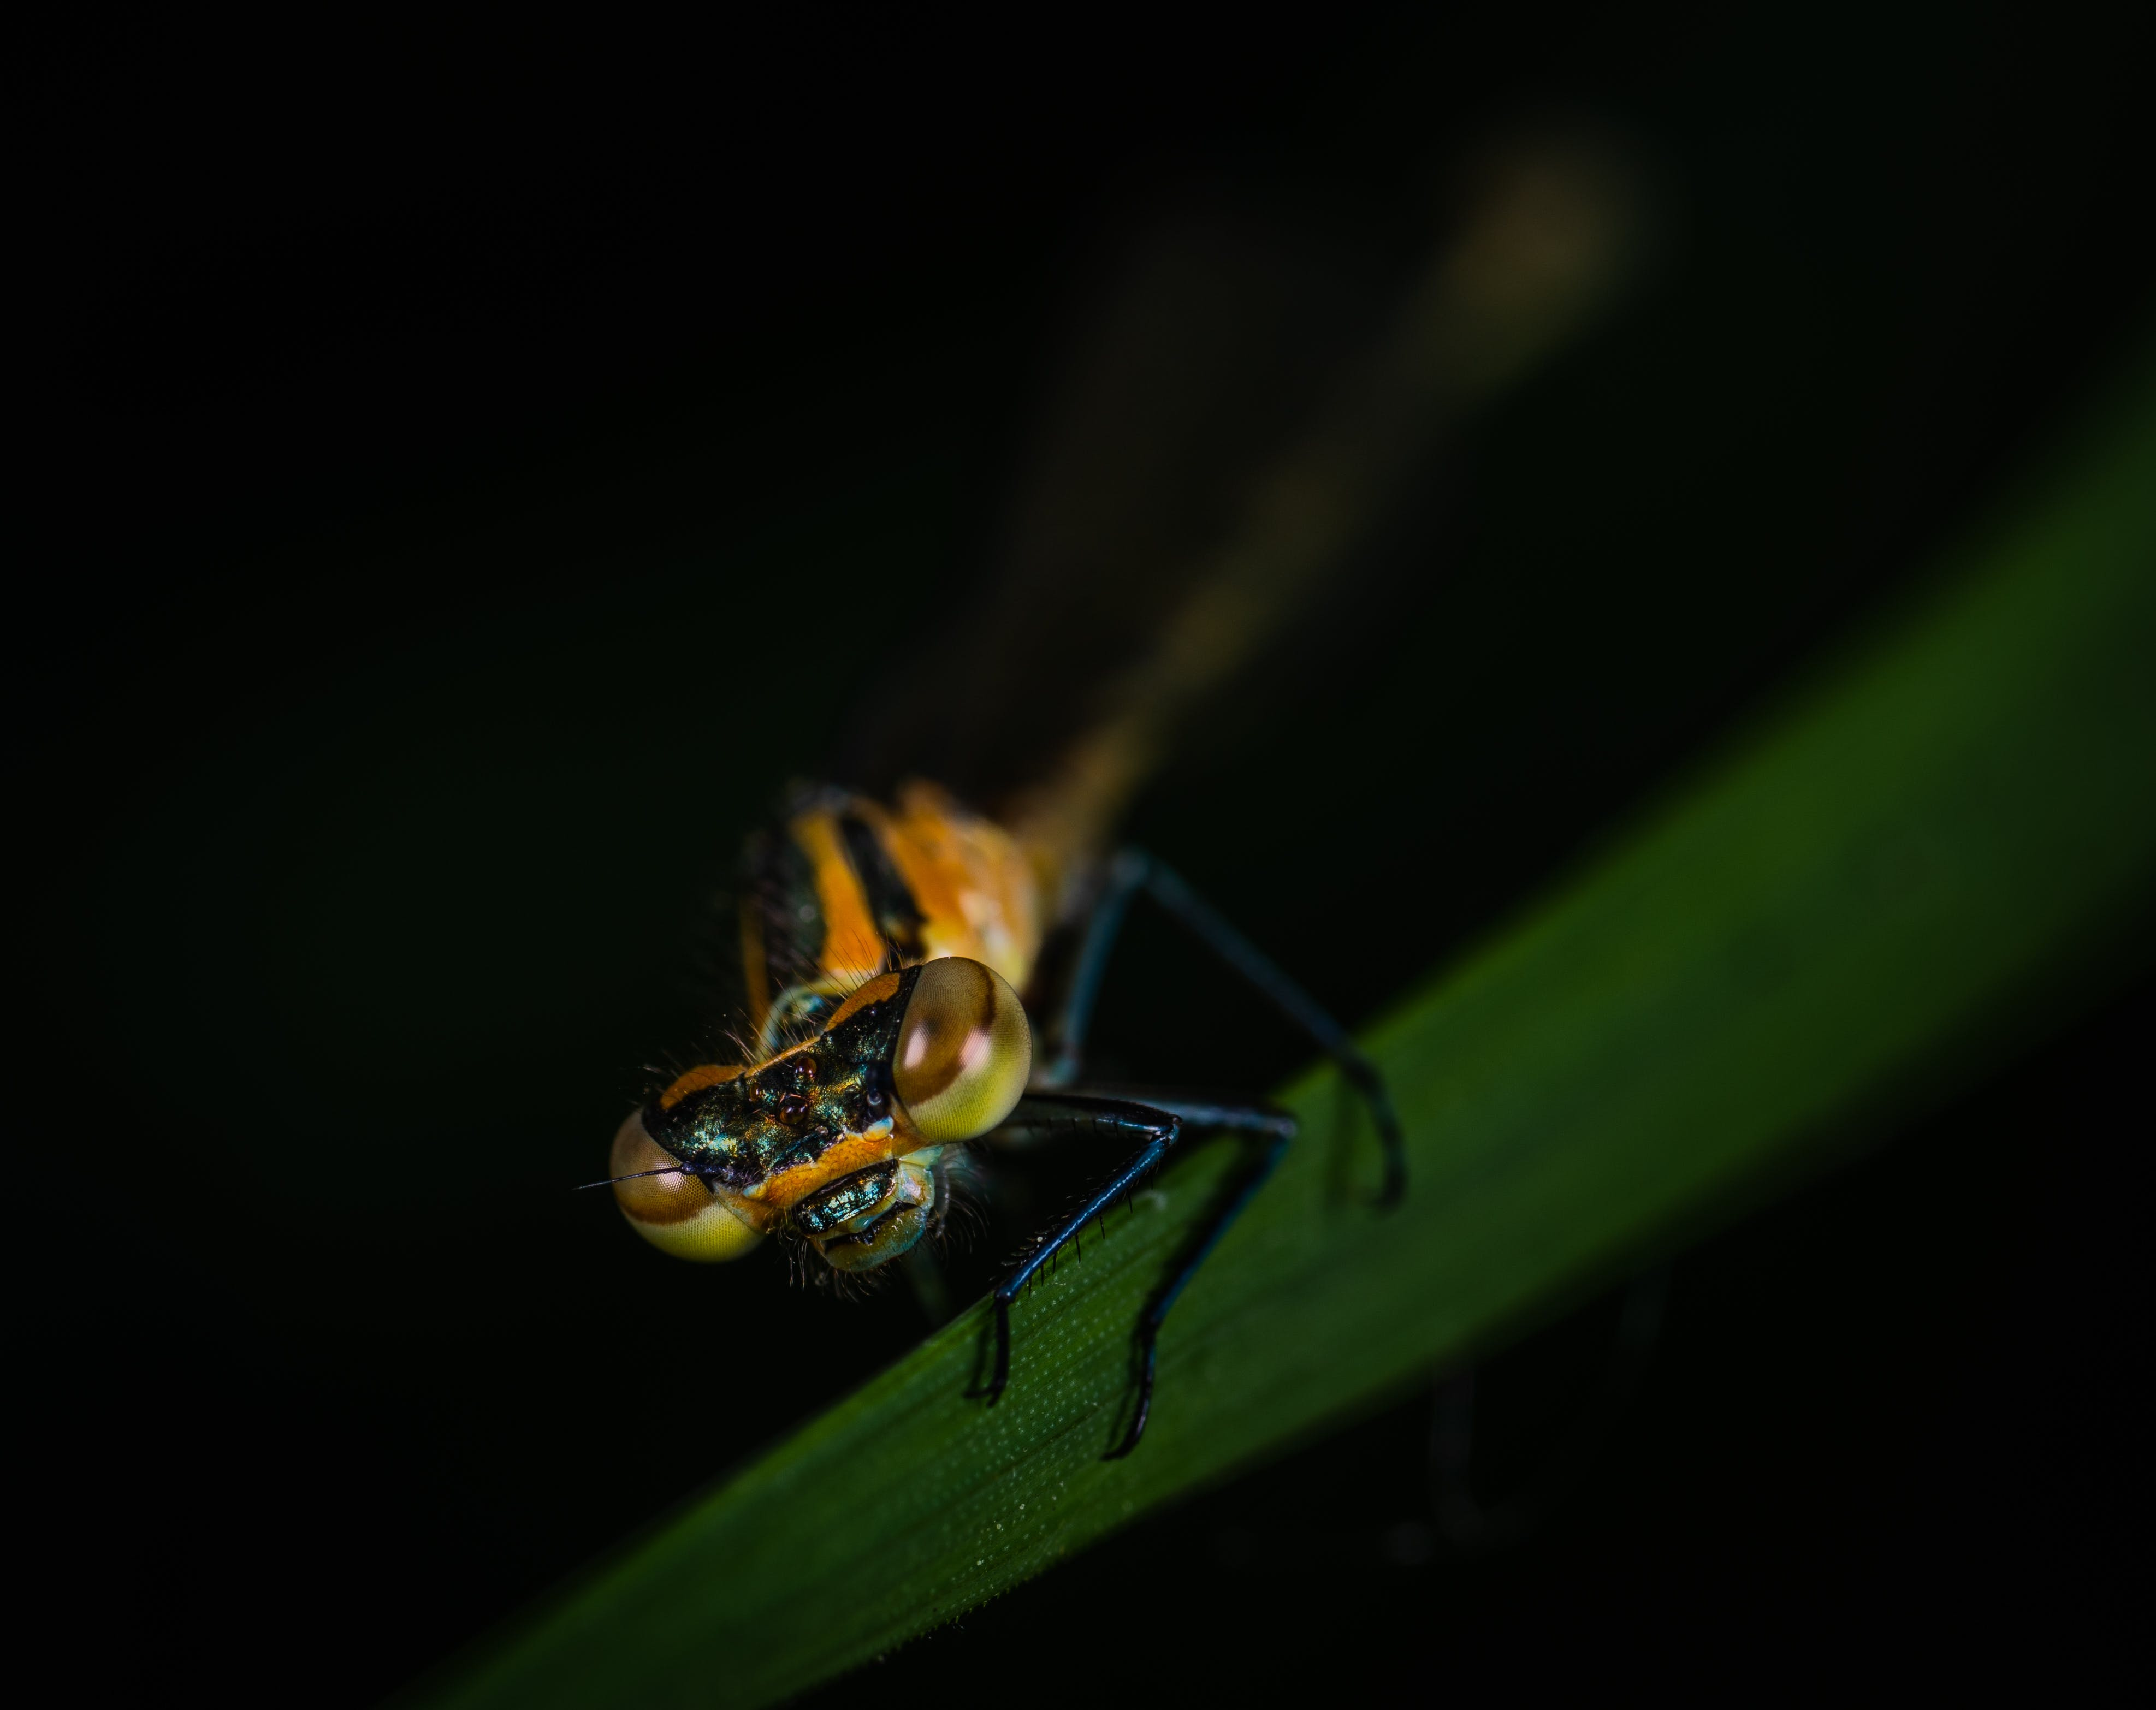 Closeup Photo of Yellow and Black Insect on Green Leaf